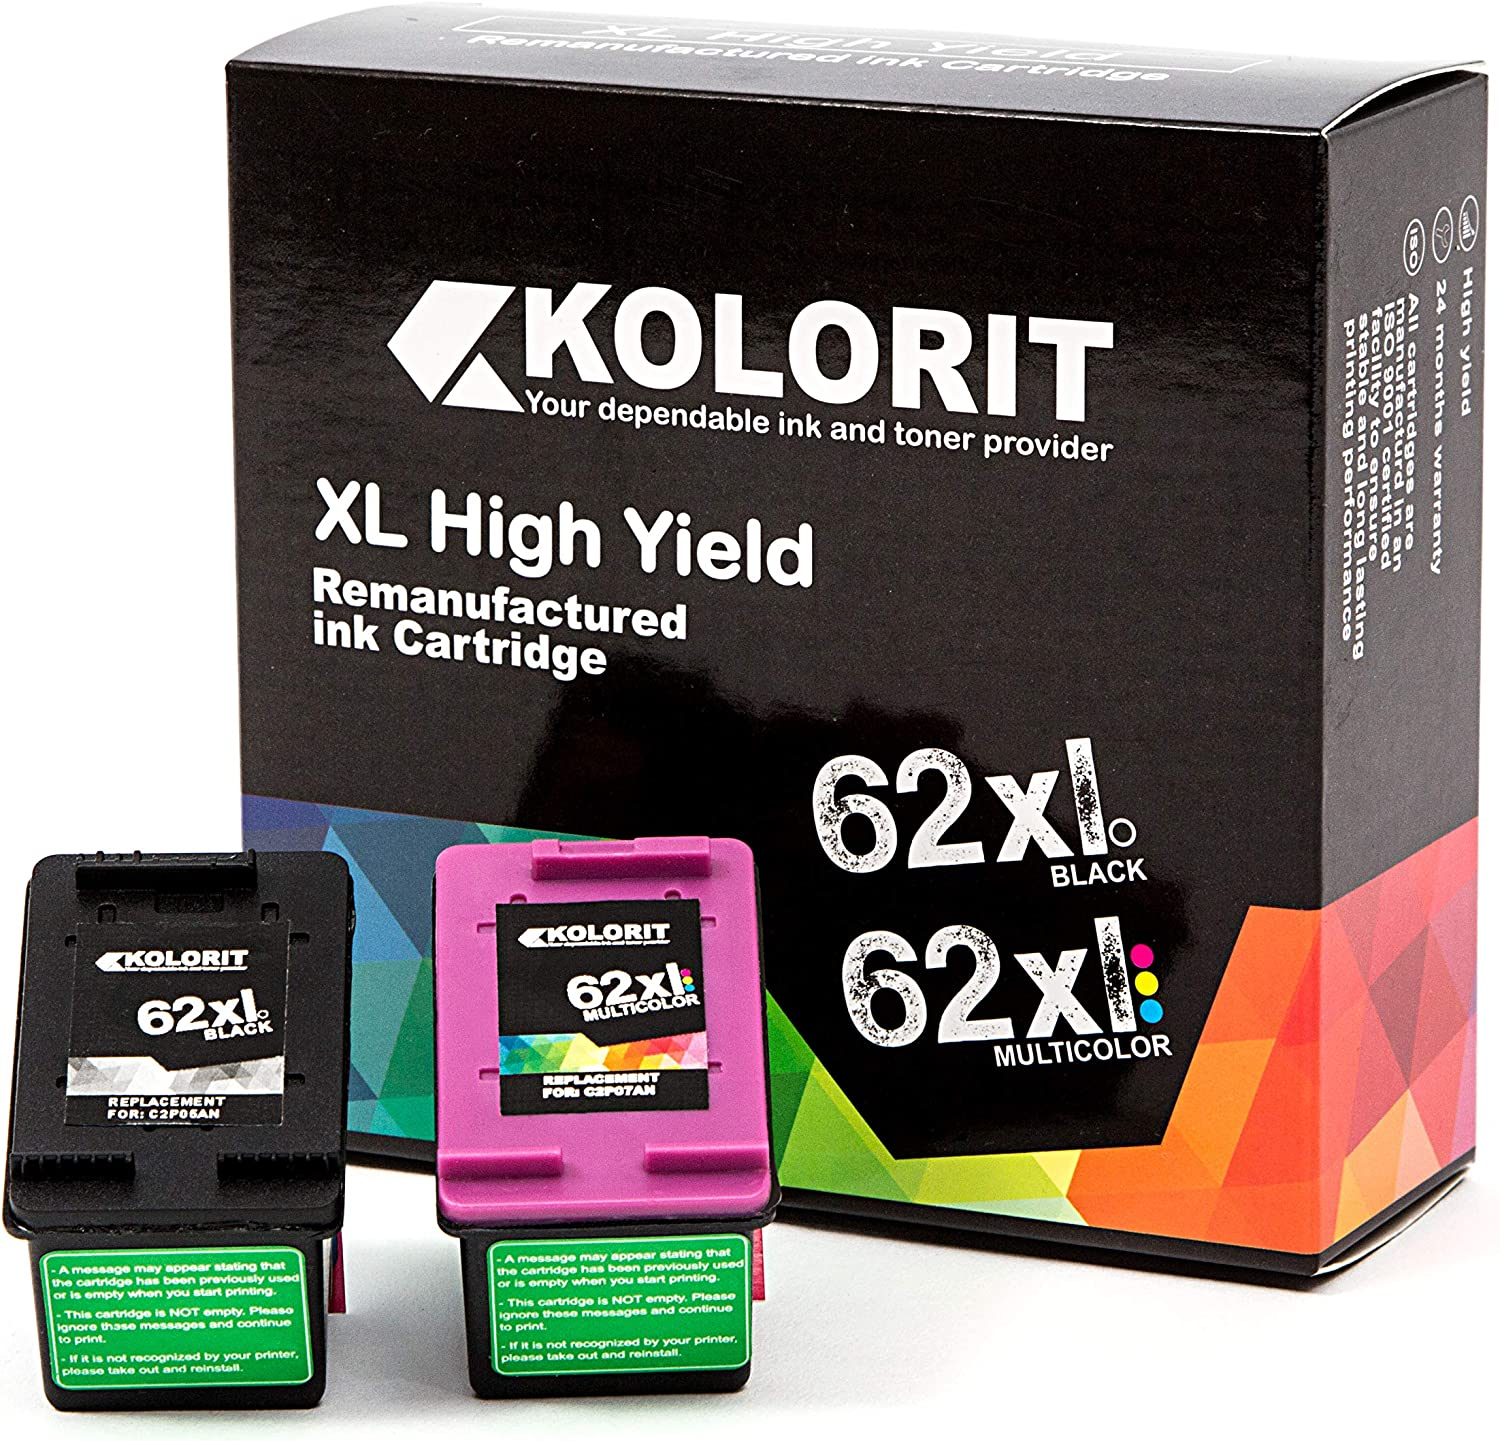 Kolorit Remanufactured for HP Ink Cartridge 62 XL Inkjet for HP Envy 5540 5640 5660 7640 8000 Officejet 5740 8040 Officejet Mobile 200 250 258 Printer Series (2 Pack, Tricolor-1 & Black-1)